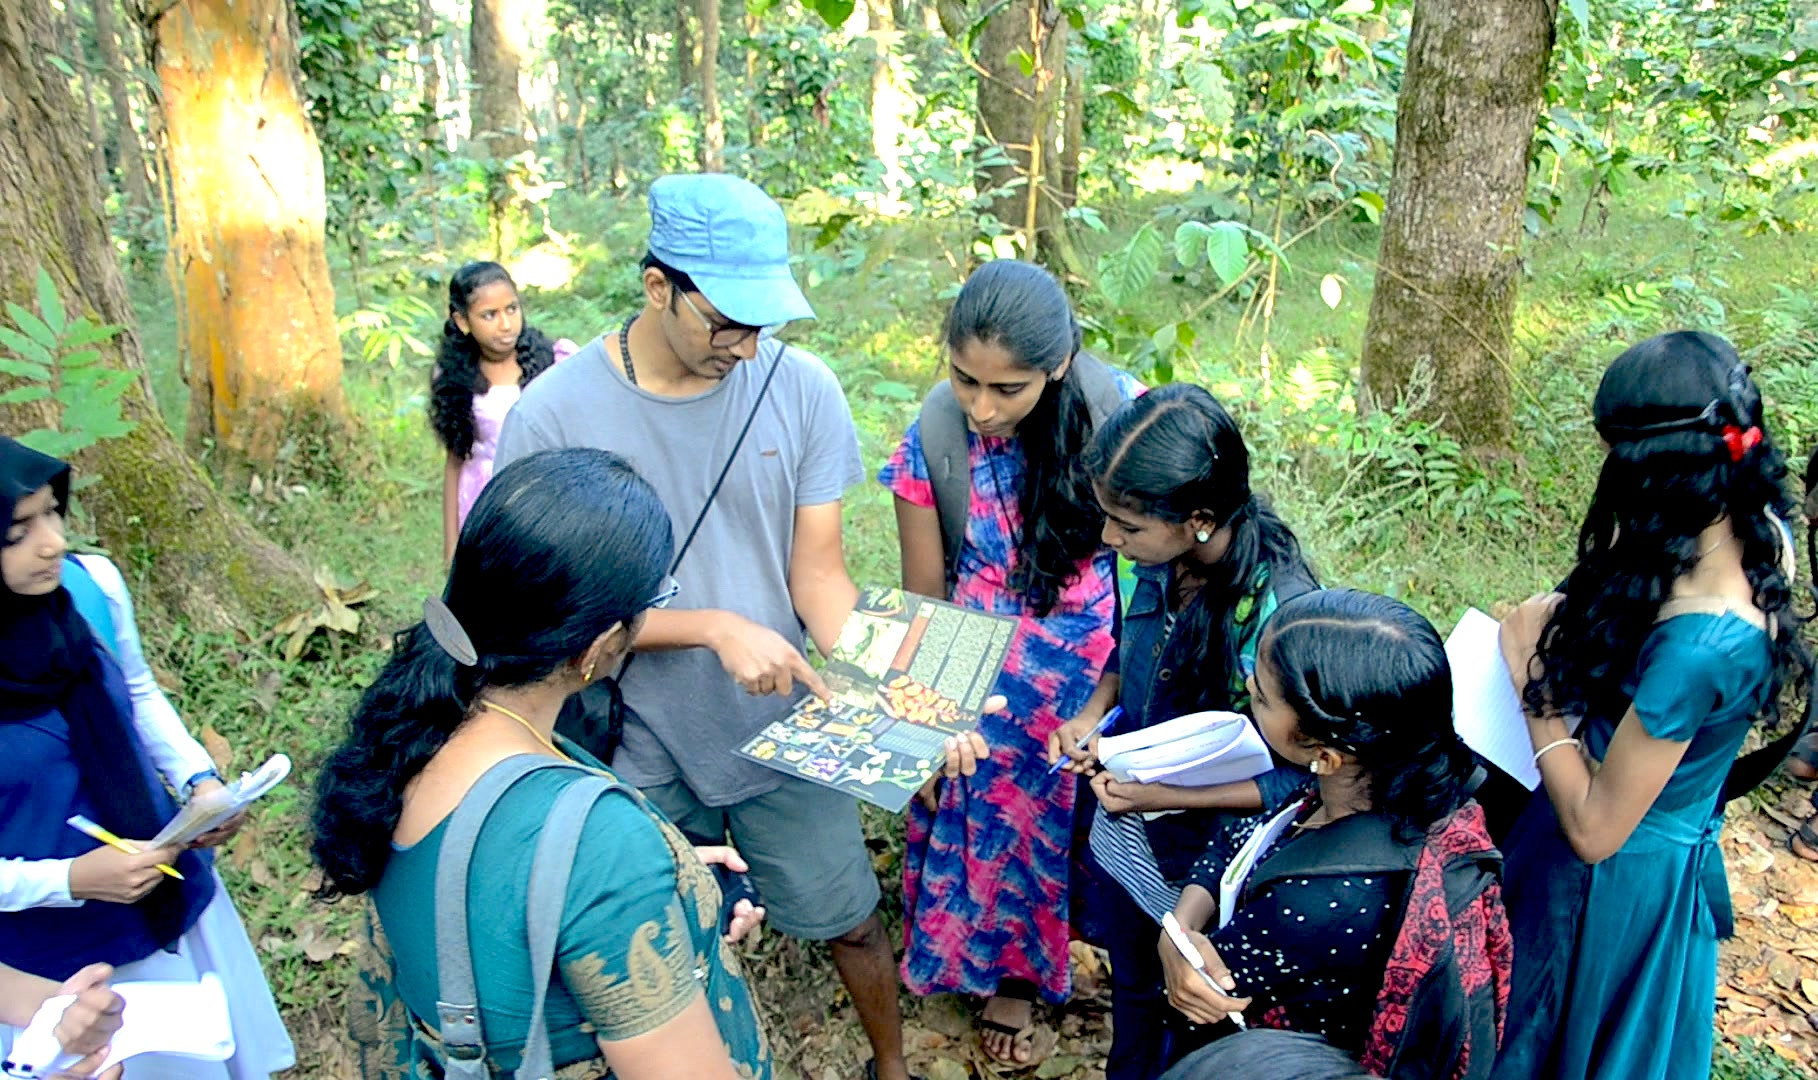 Since they live close to these forests, the school students of Vythiri were quick to pick up information about the orchids in their environment. Photo: Jis Sebastian